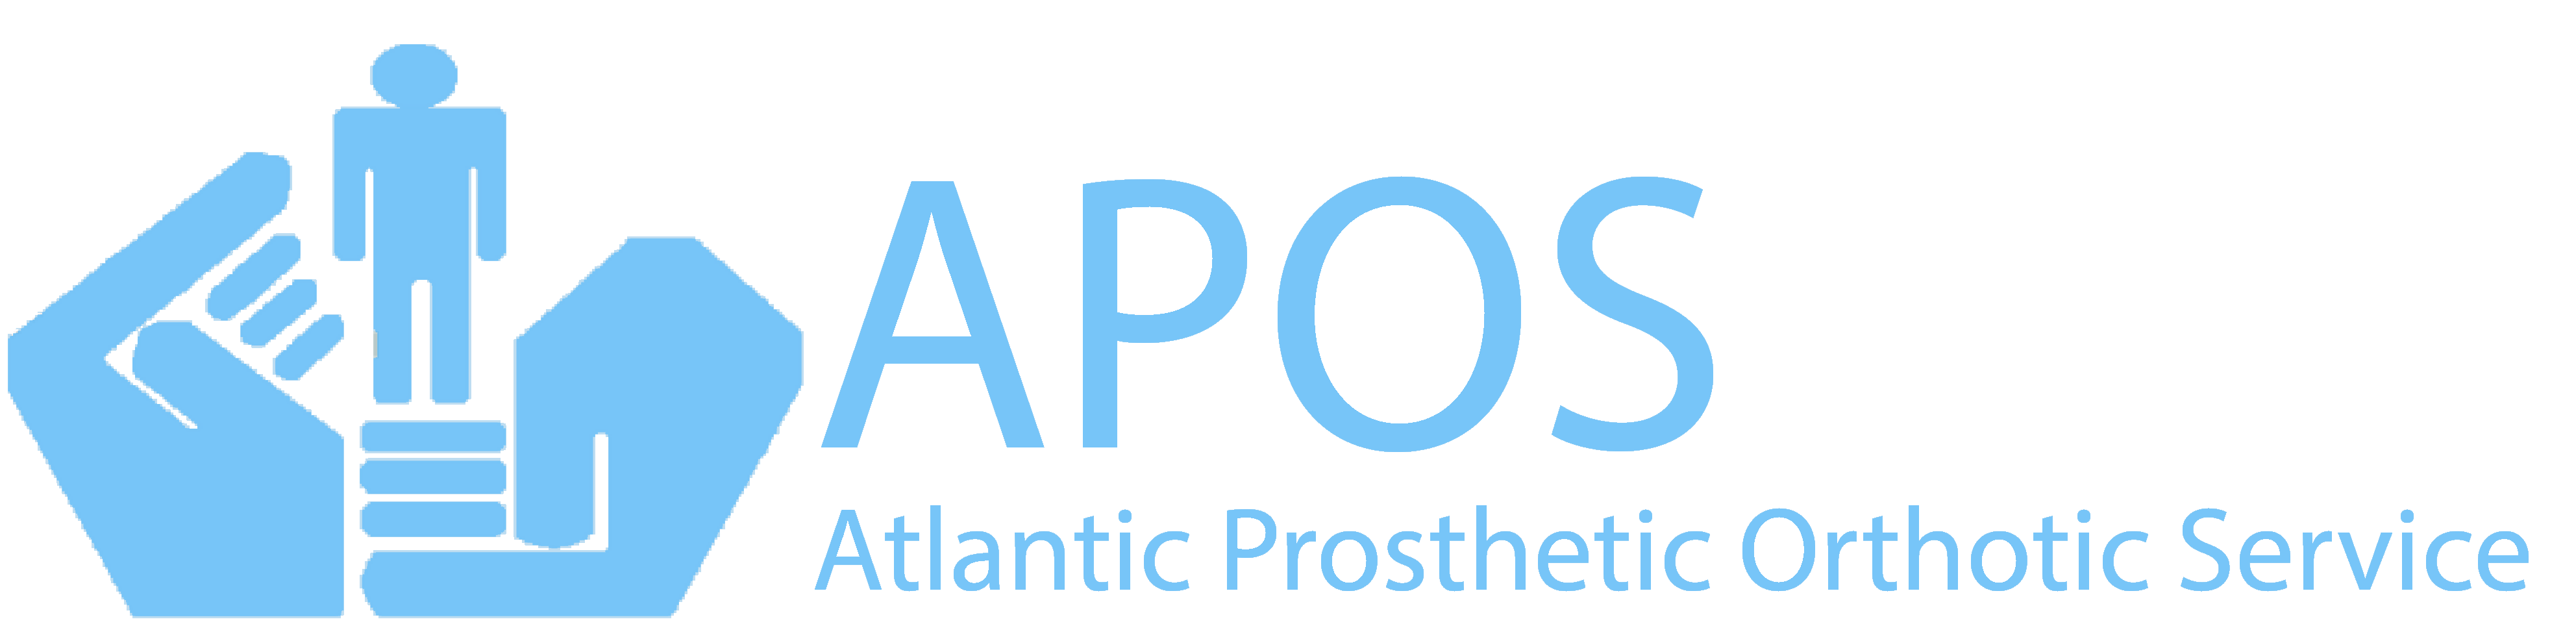 Atlantic Prosthetic Orthotic Services Ltd